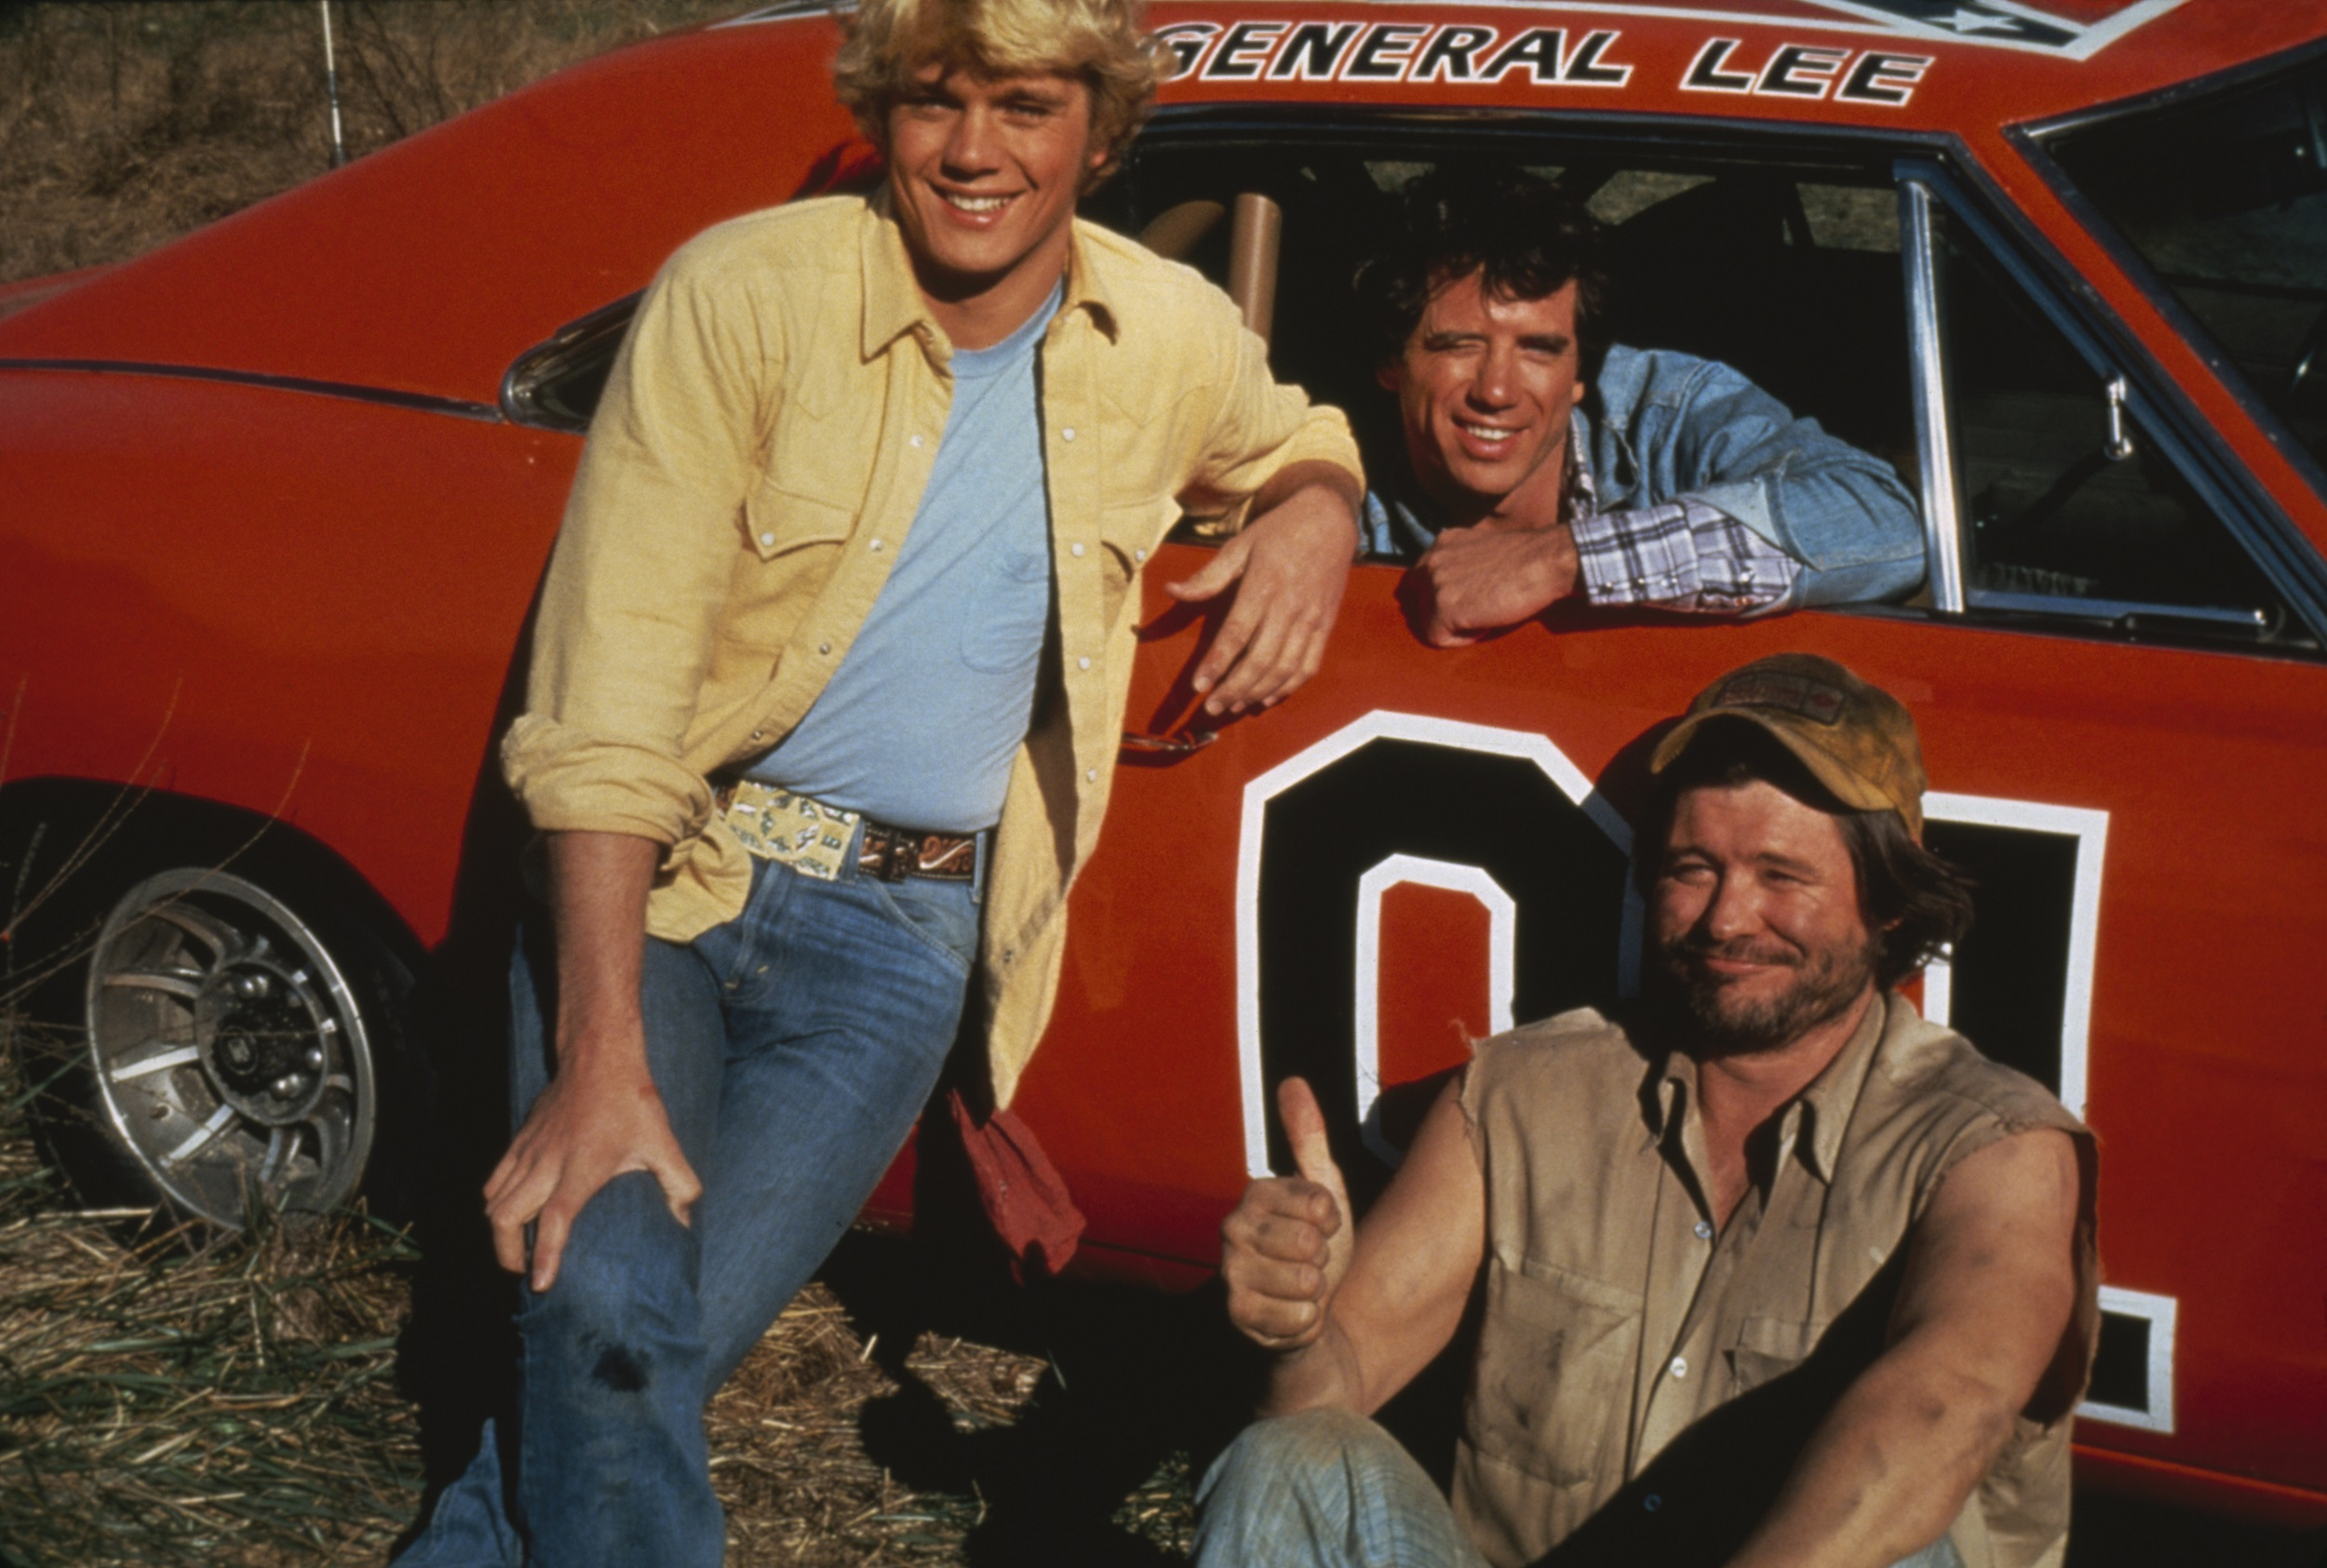 John Schneider, Tom Wopat, and Ben Jones as Bo Duke, Luke Duke, and Cooter in The Dukes of Hazzard. They are posing with the General Lee car, a 1969 Dodge Charger.